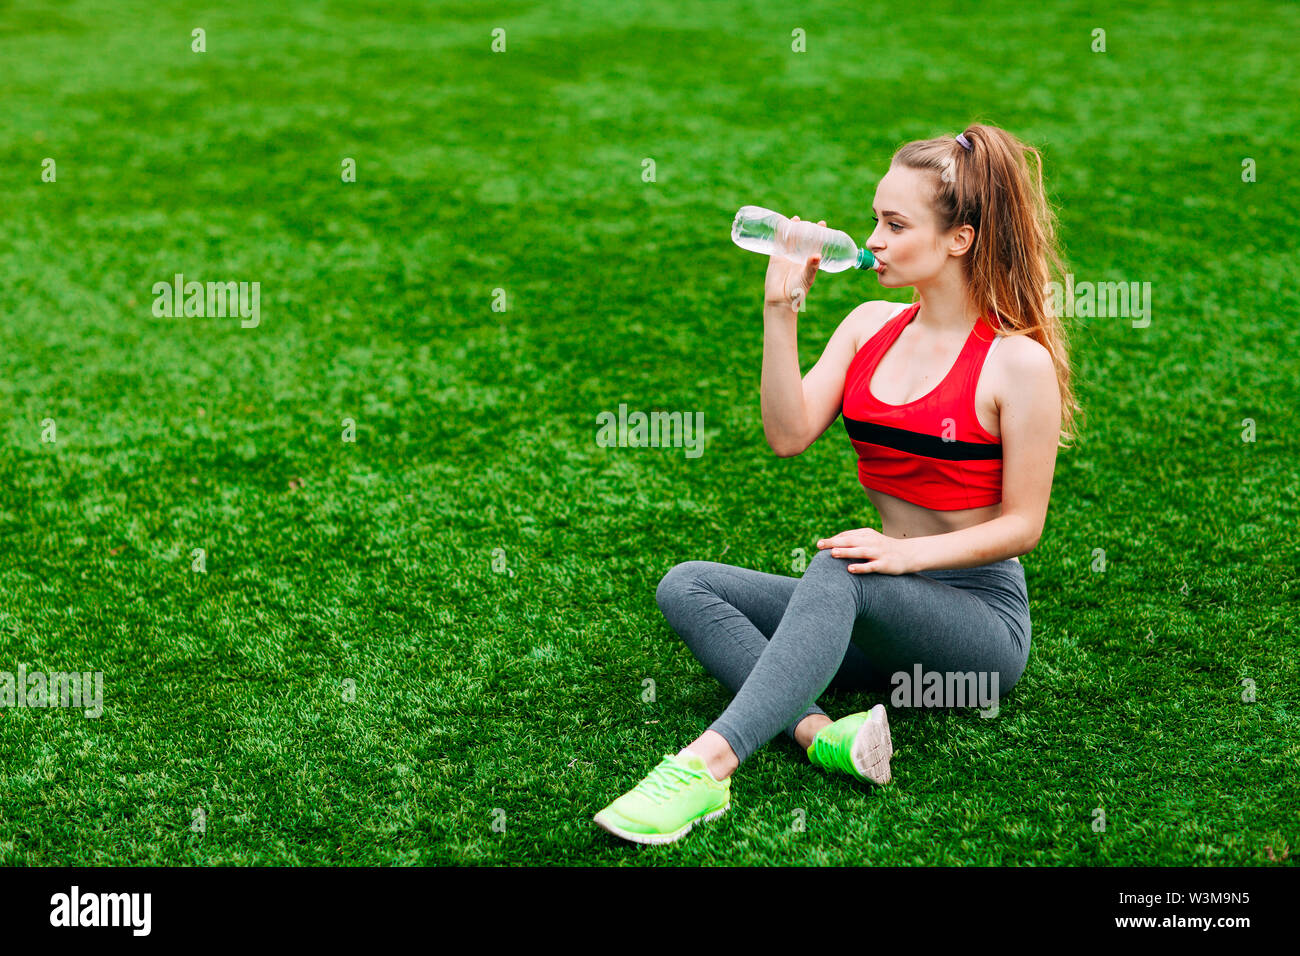 Beautiful Smiling Woman Relaxing on the Grass in the Park During Training. Sport and Fitness Concept. - Stock Image